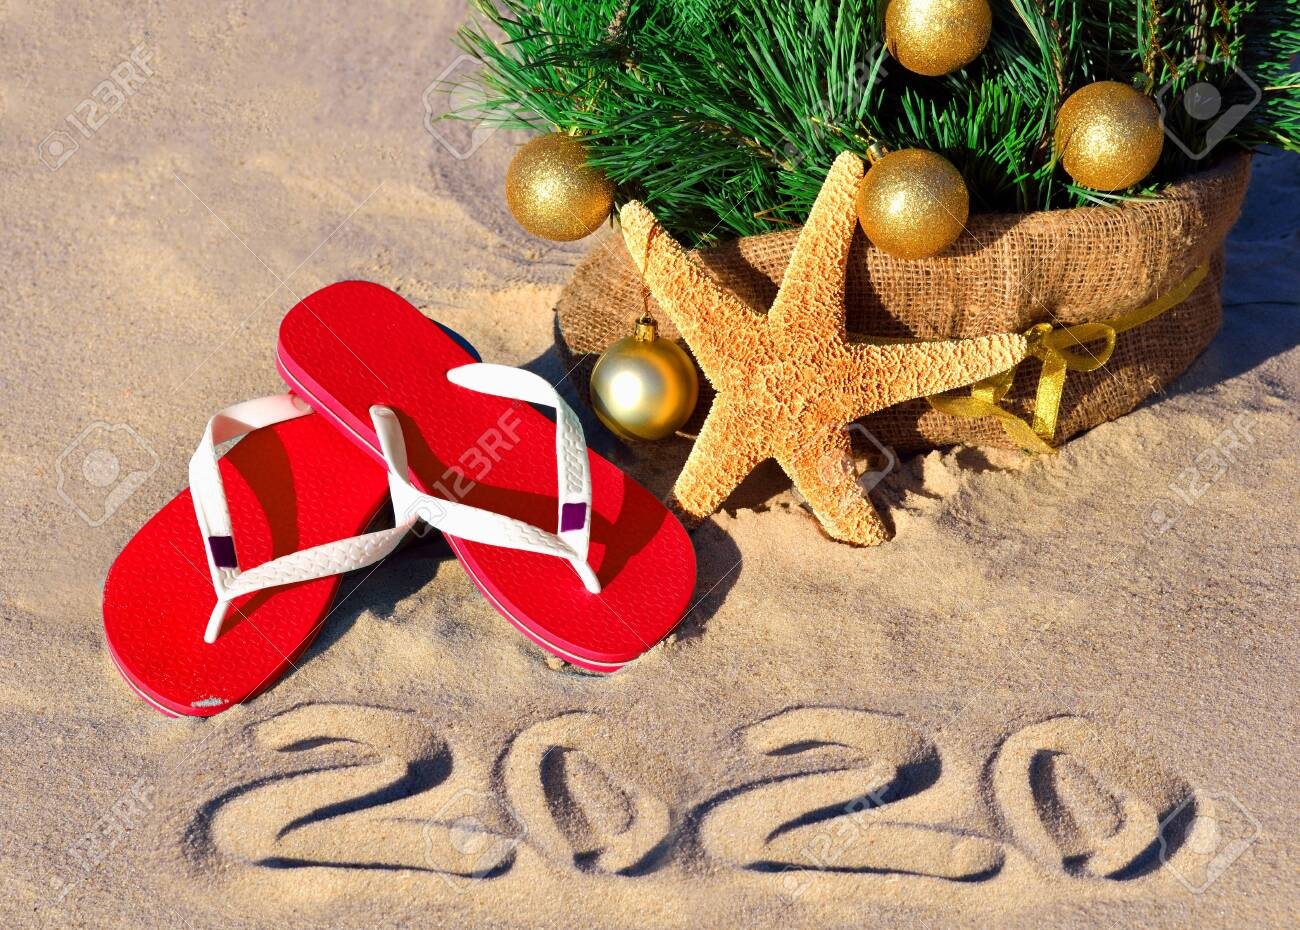 New Year 2020 on the beach. Christmas tree, starfish and slippers in sand - 137932582